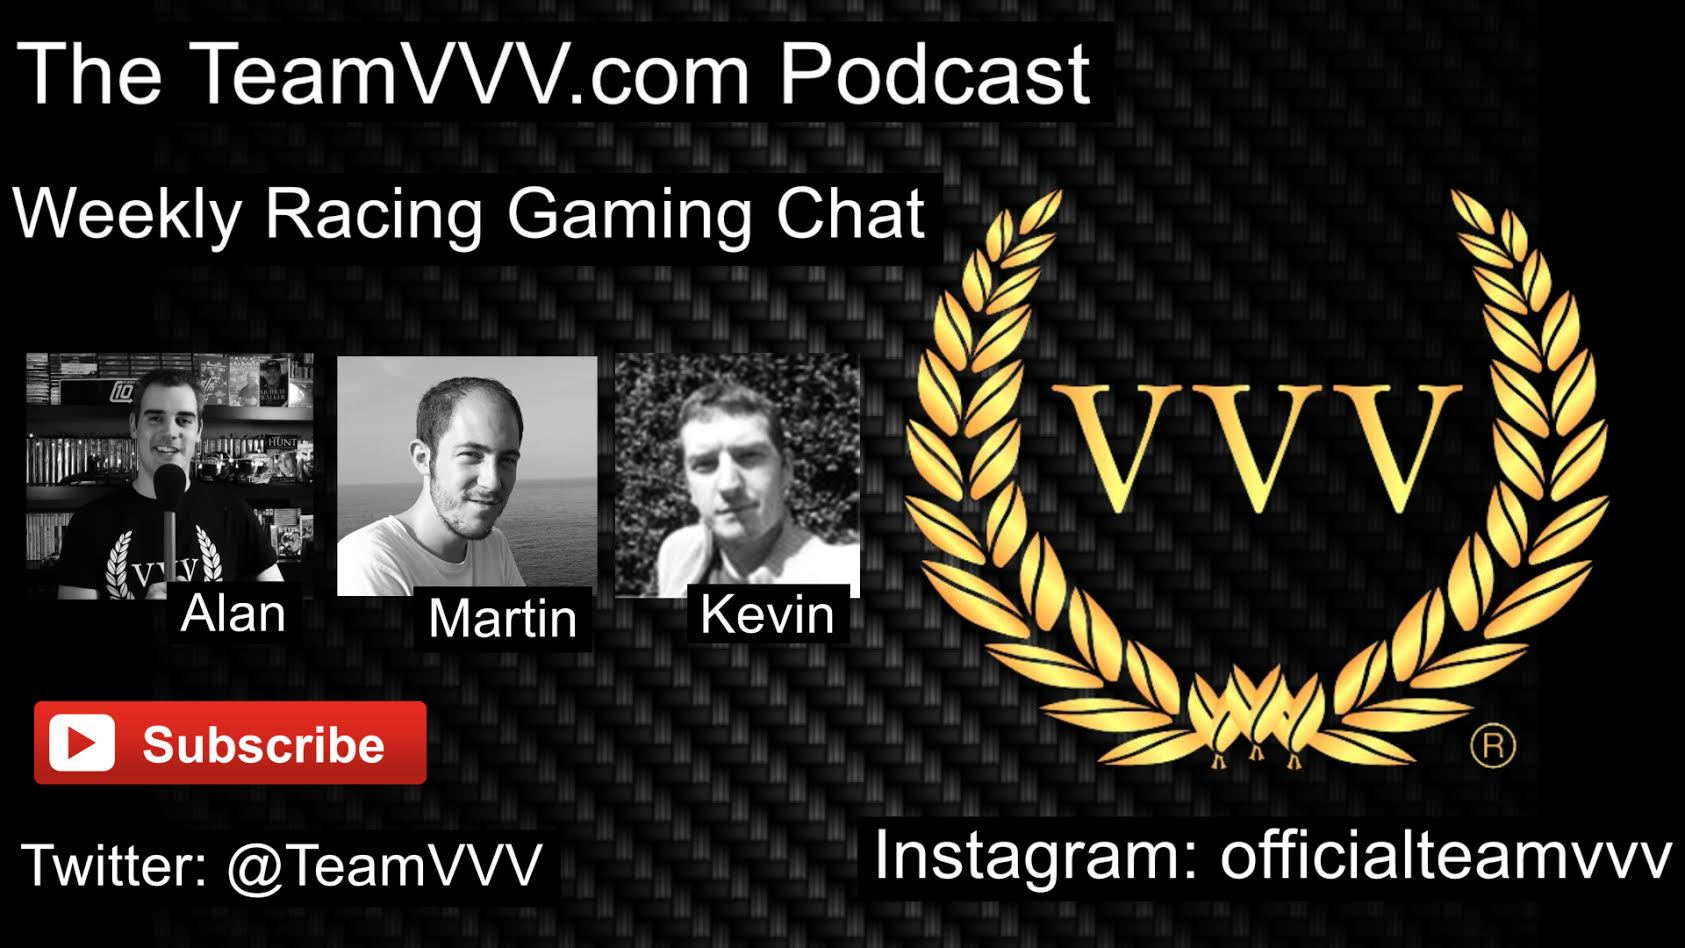 The TeamVVV Podcast Episode 6: Ride 2, Forza Horizon 3 and more